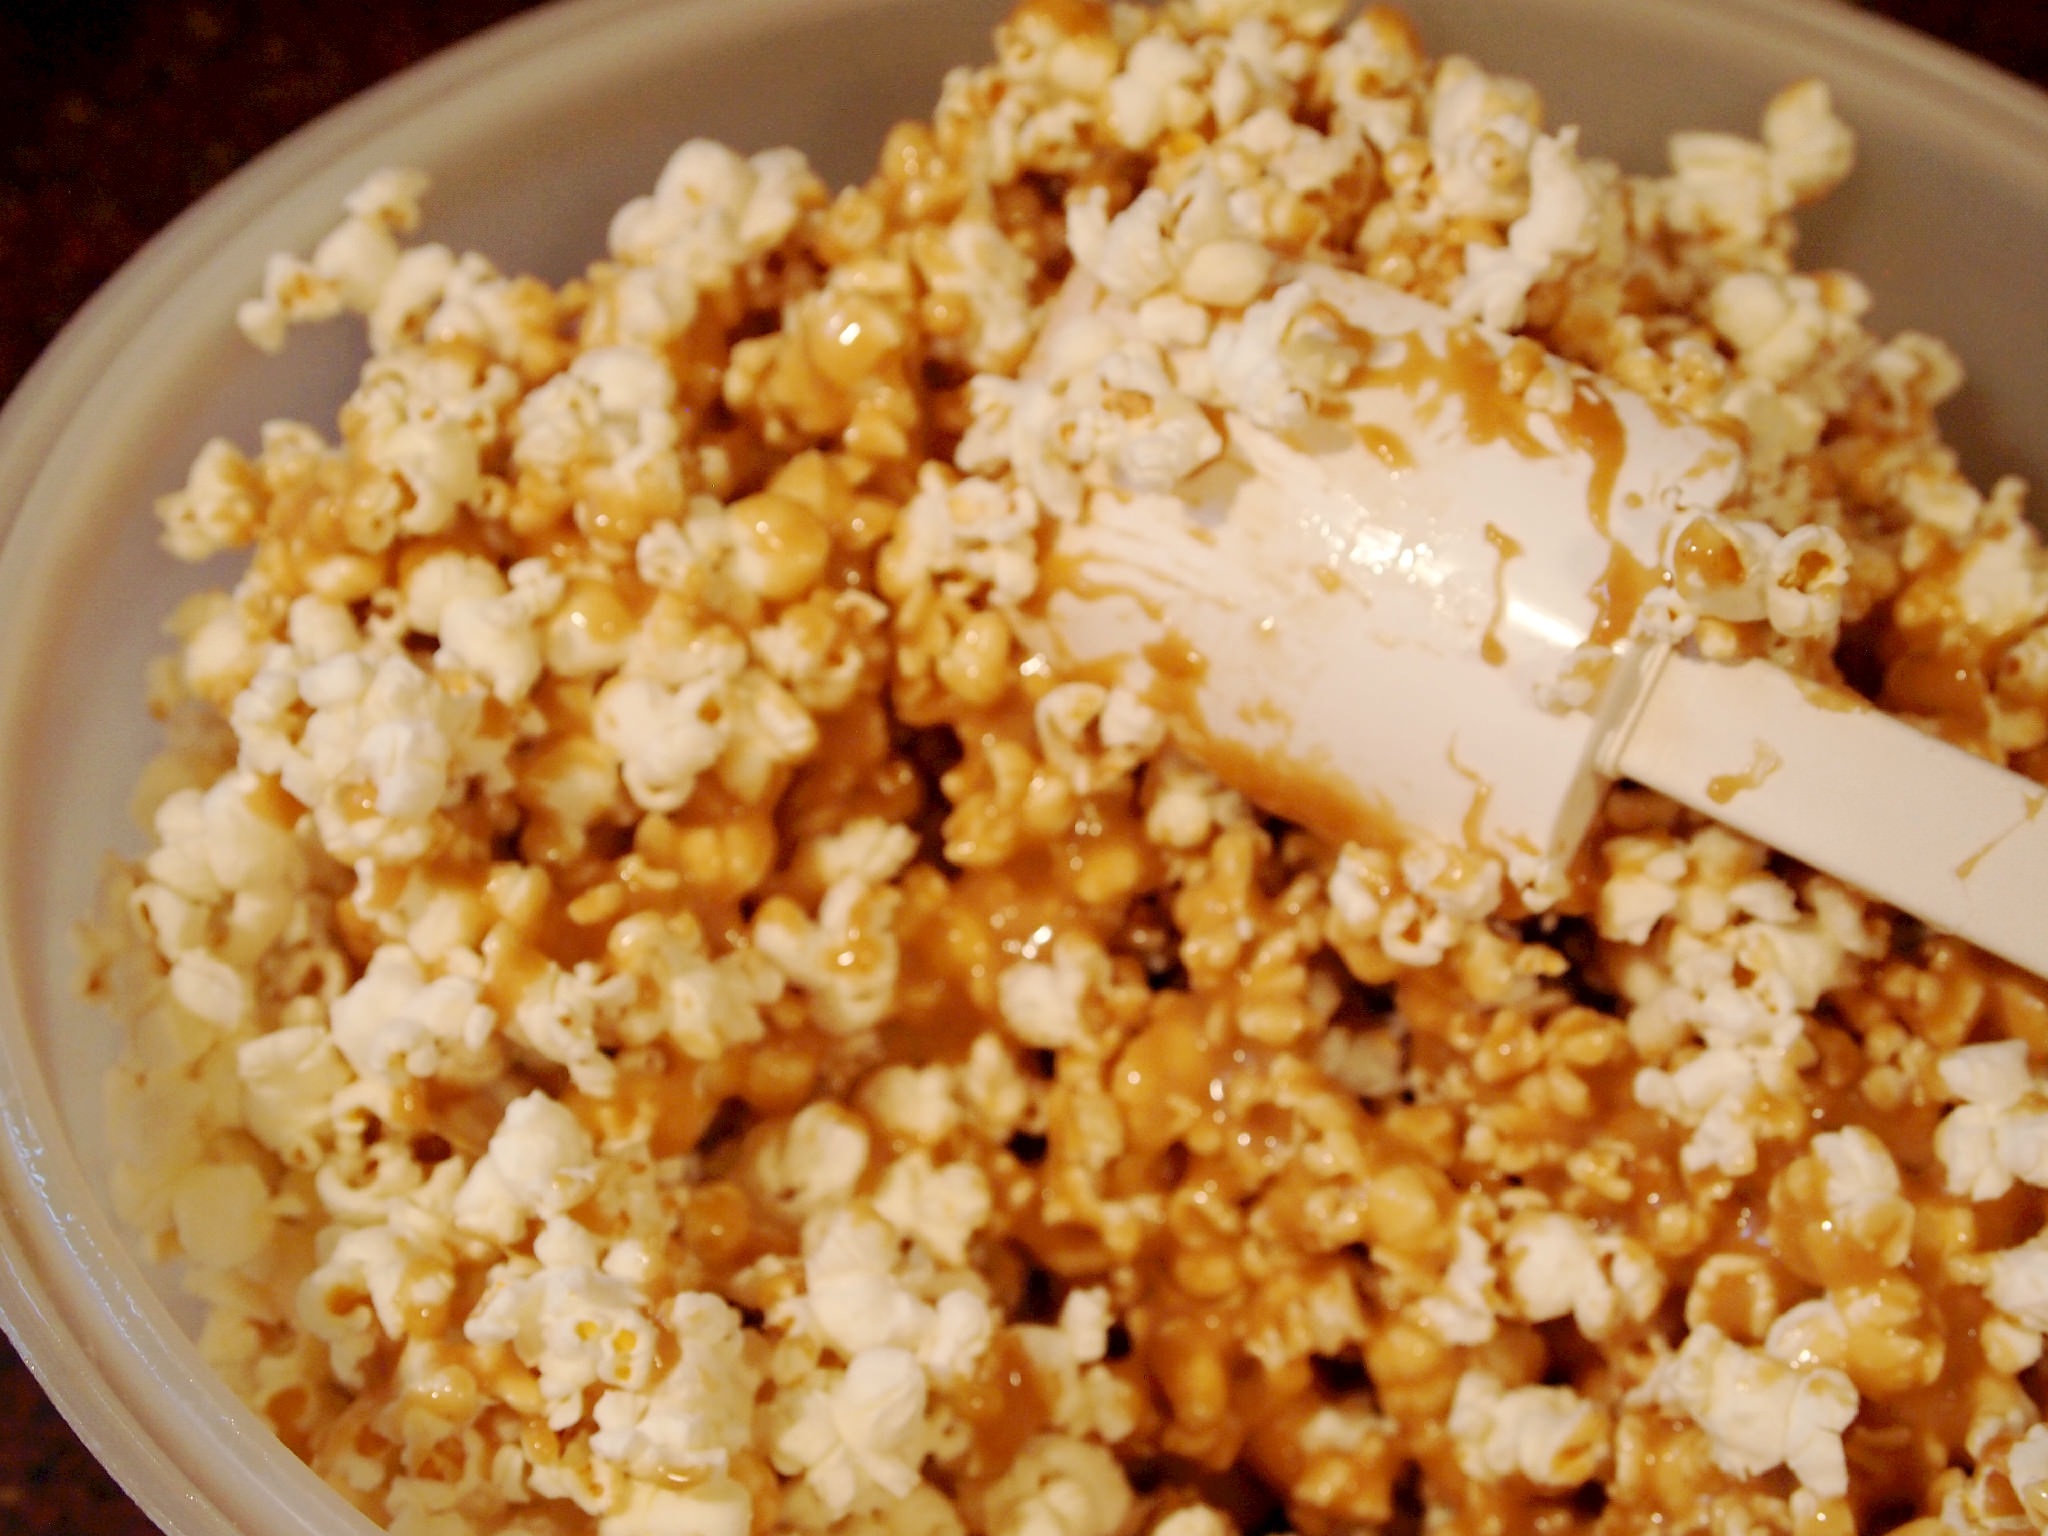 coating popcorn with caramel